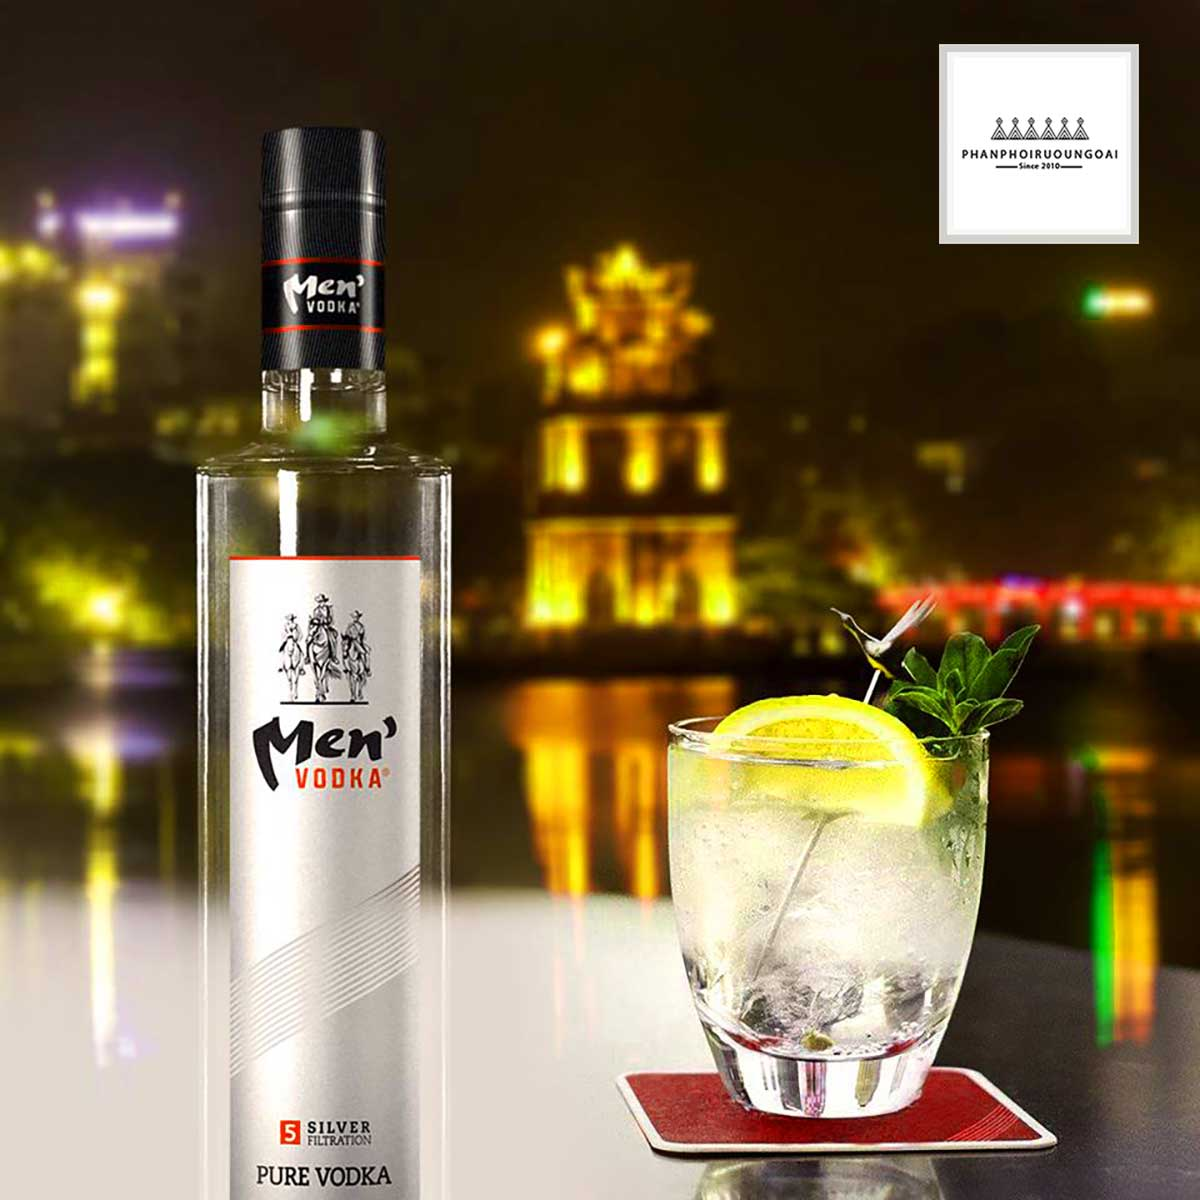 Rượu Vodka Men 500 ml và ly cocktail ngọt lành